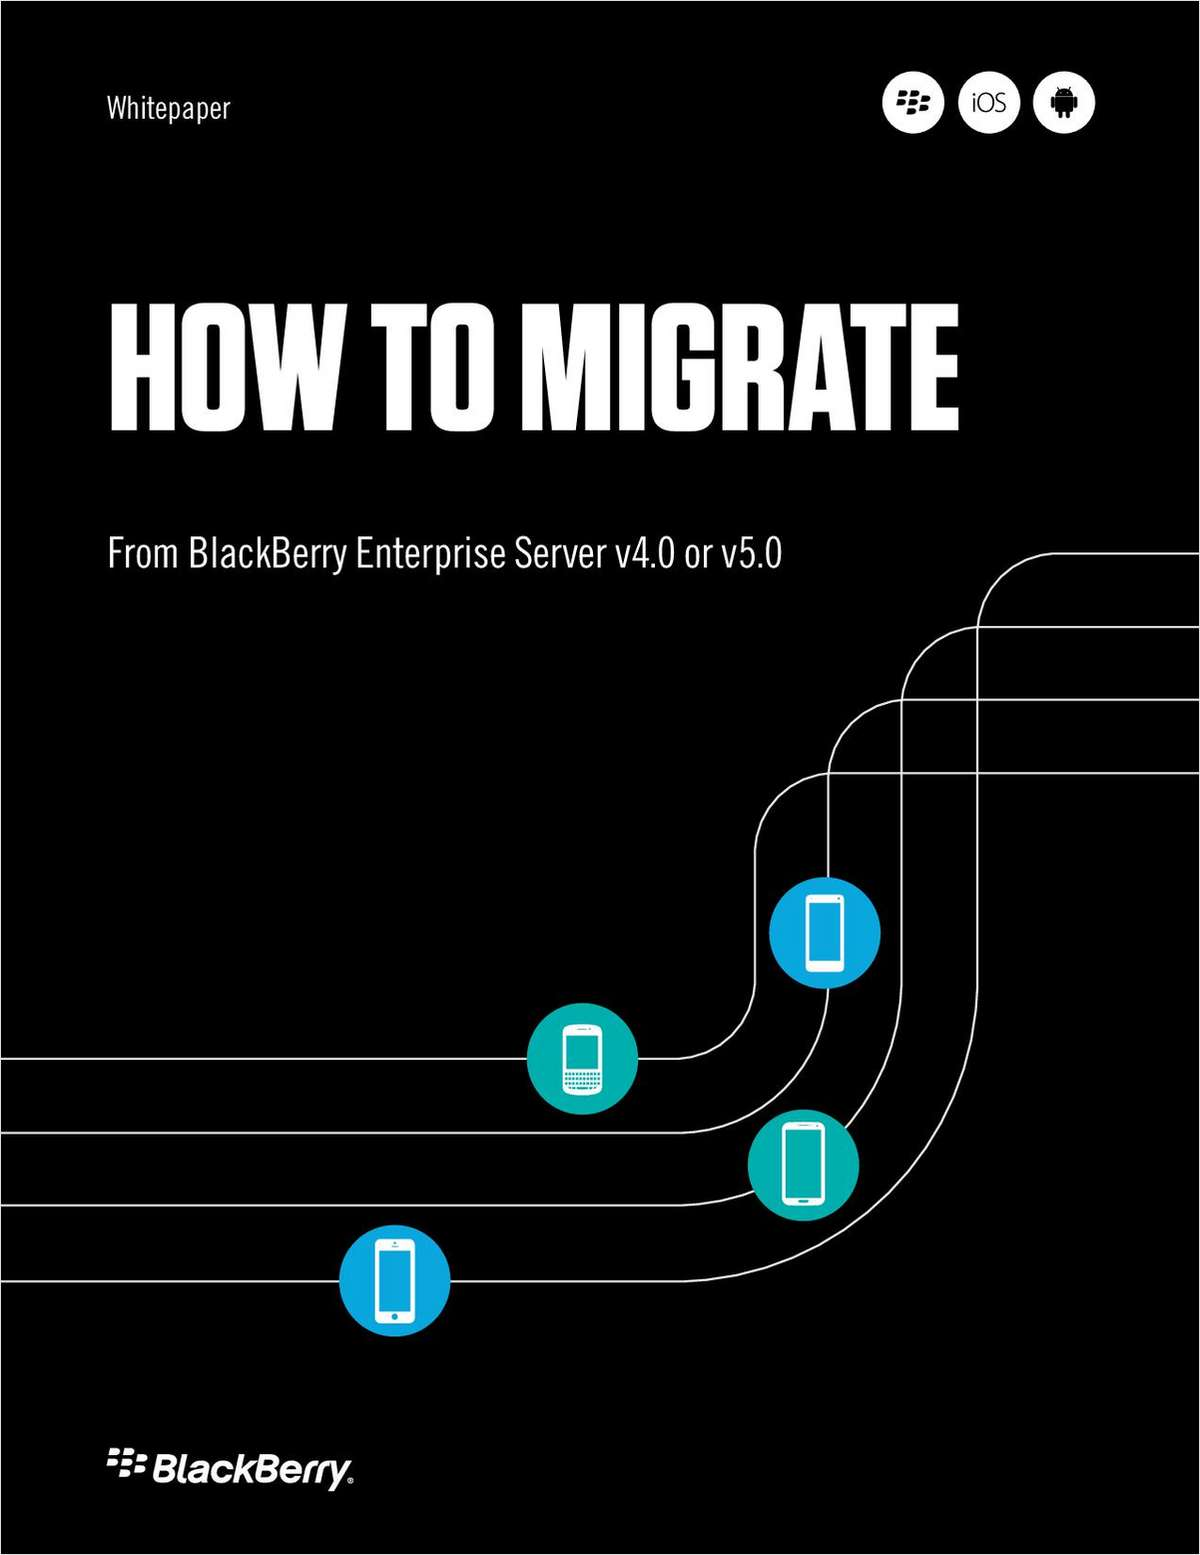 How to Migrate from BlackBerry Enterprise Server v4.0 or v5.0 to BlackBerry Enterprise Service 10